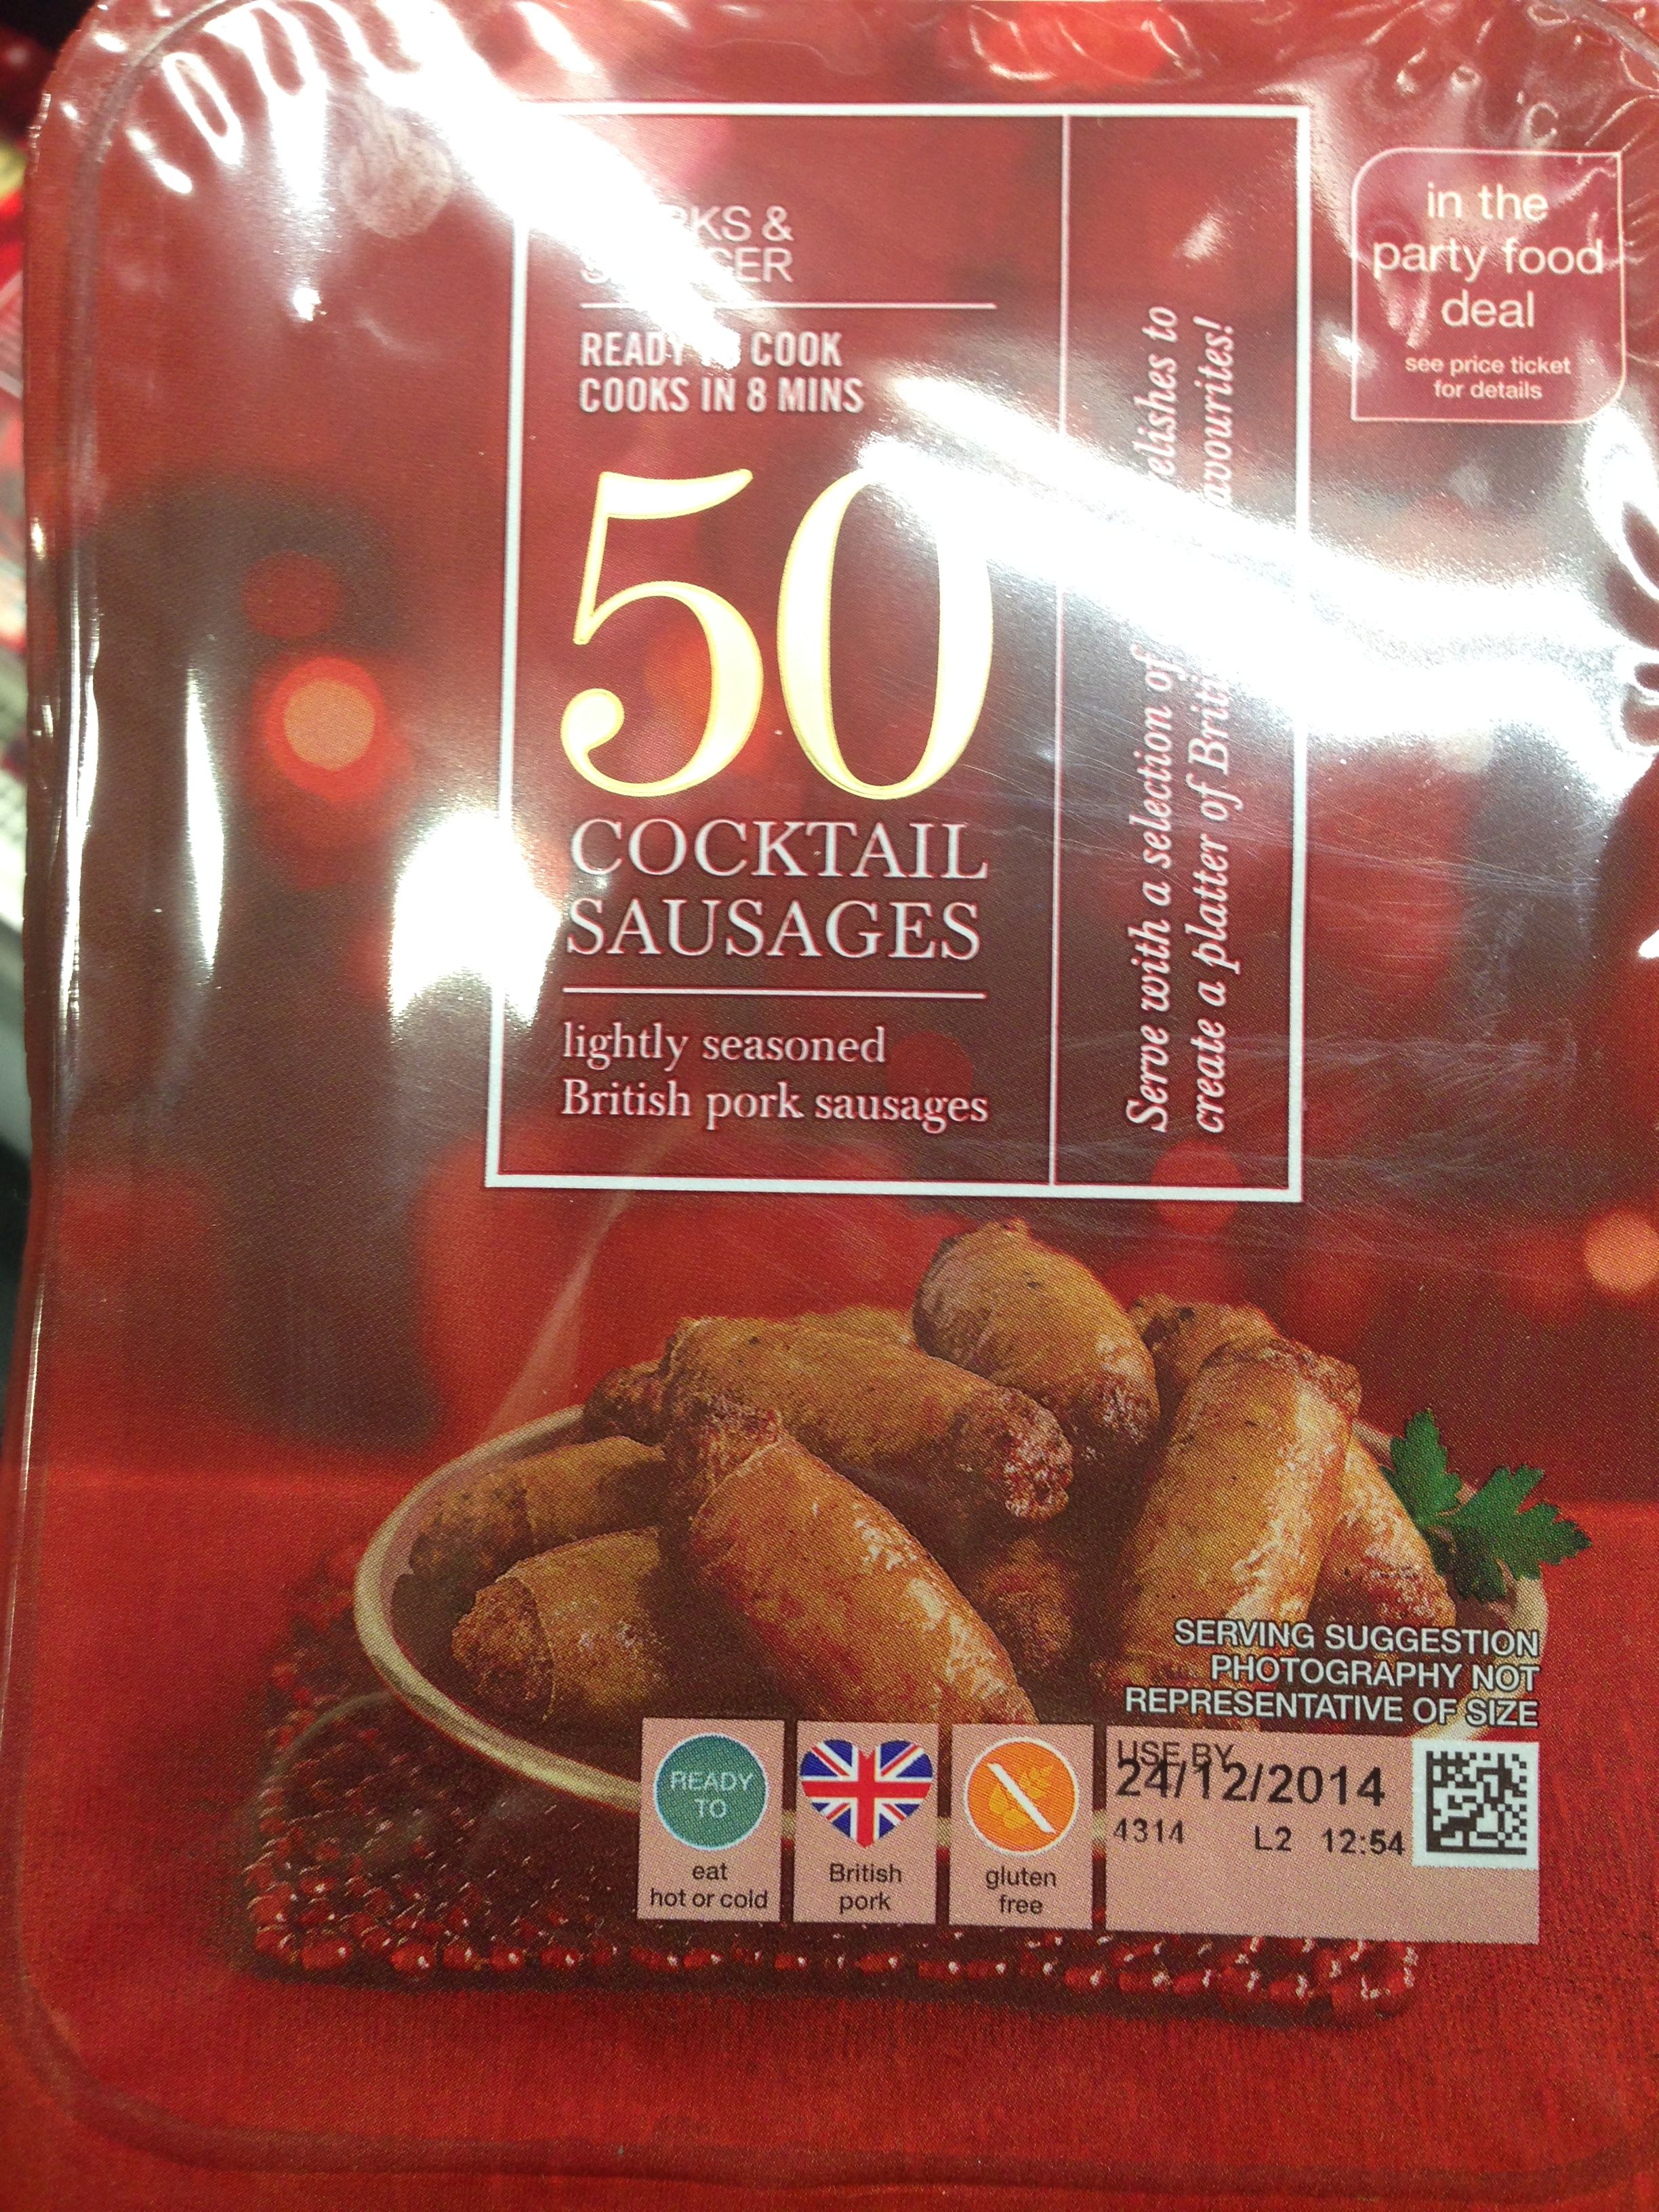 40 New Products In The Marks And Spencer Gluten Free